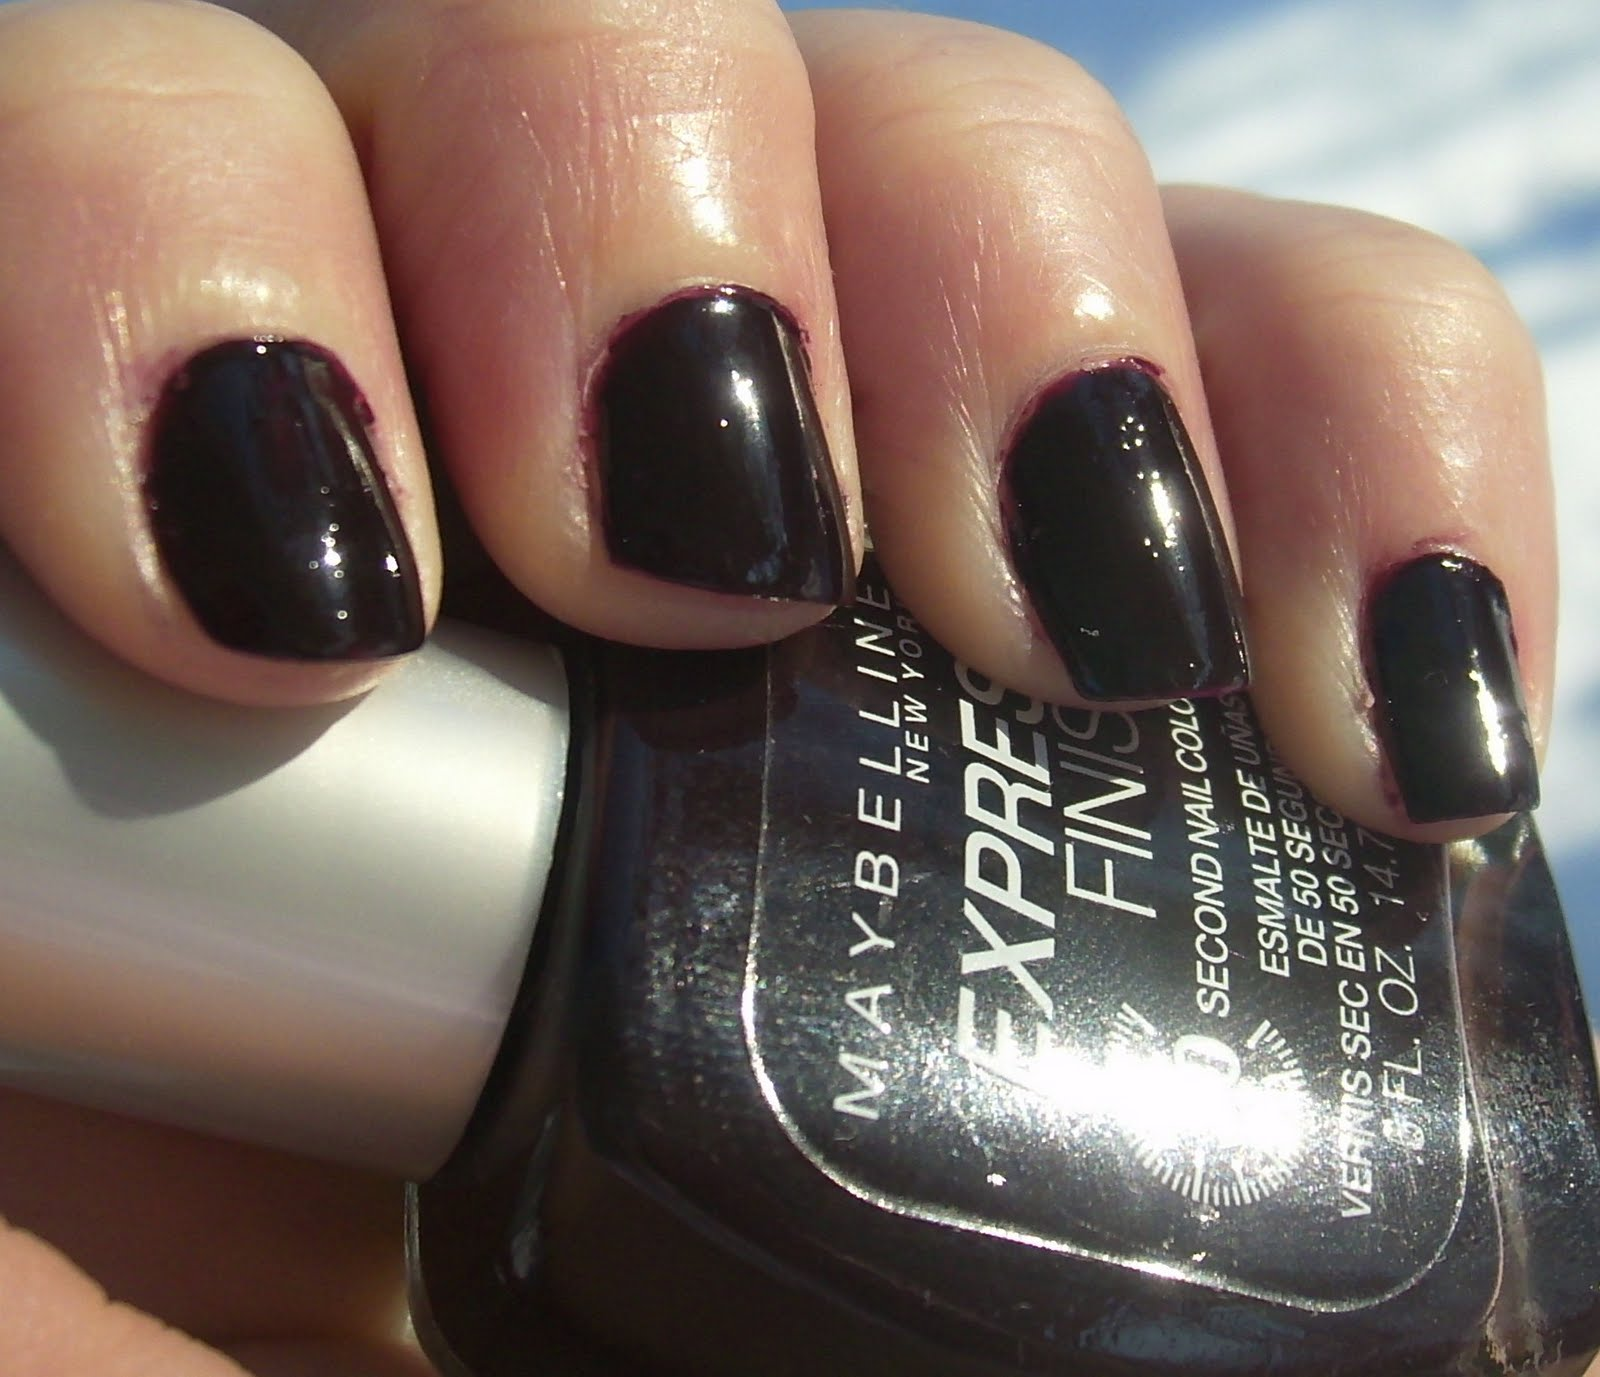 Kitty Luvs Color!: Maybelline Express Finish Nail Polish, Plum ...